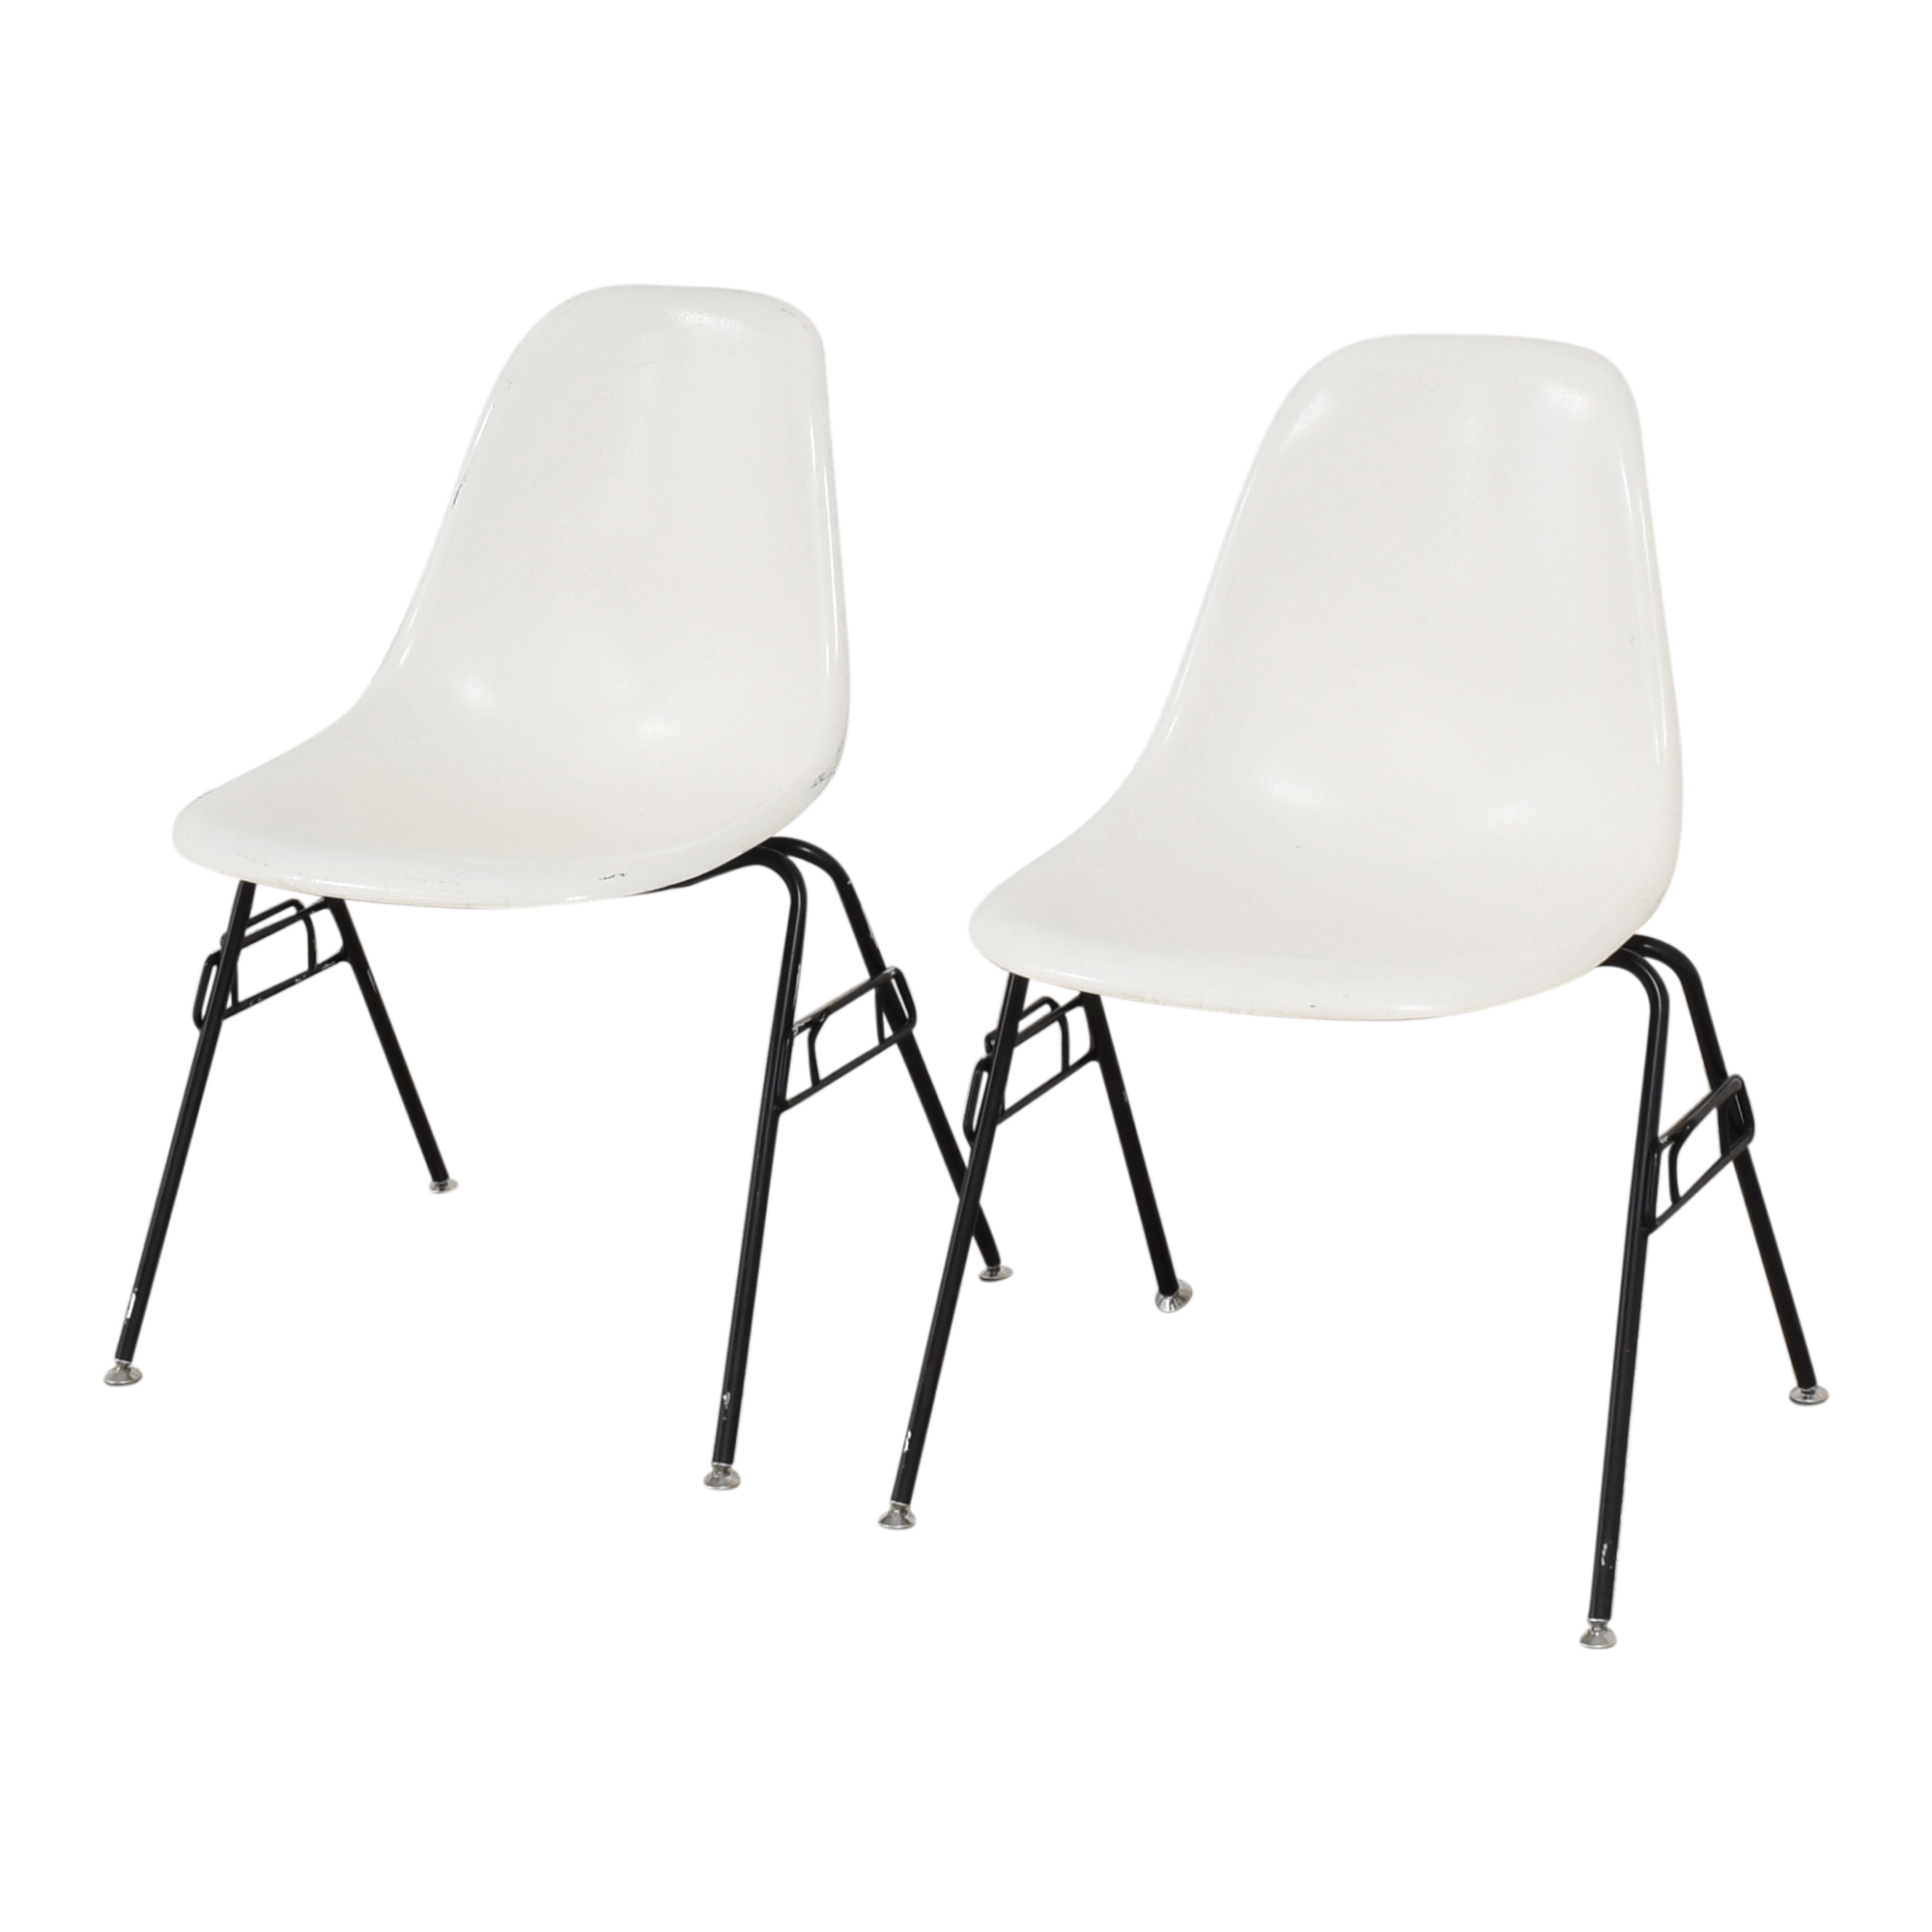 buy Modernica Case Study Furniture Side Shell Stacking Chairs Modernica Chairs